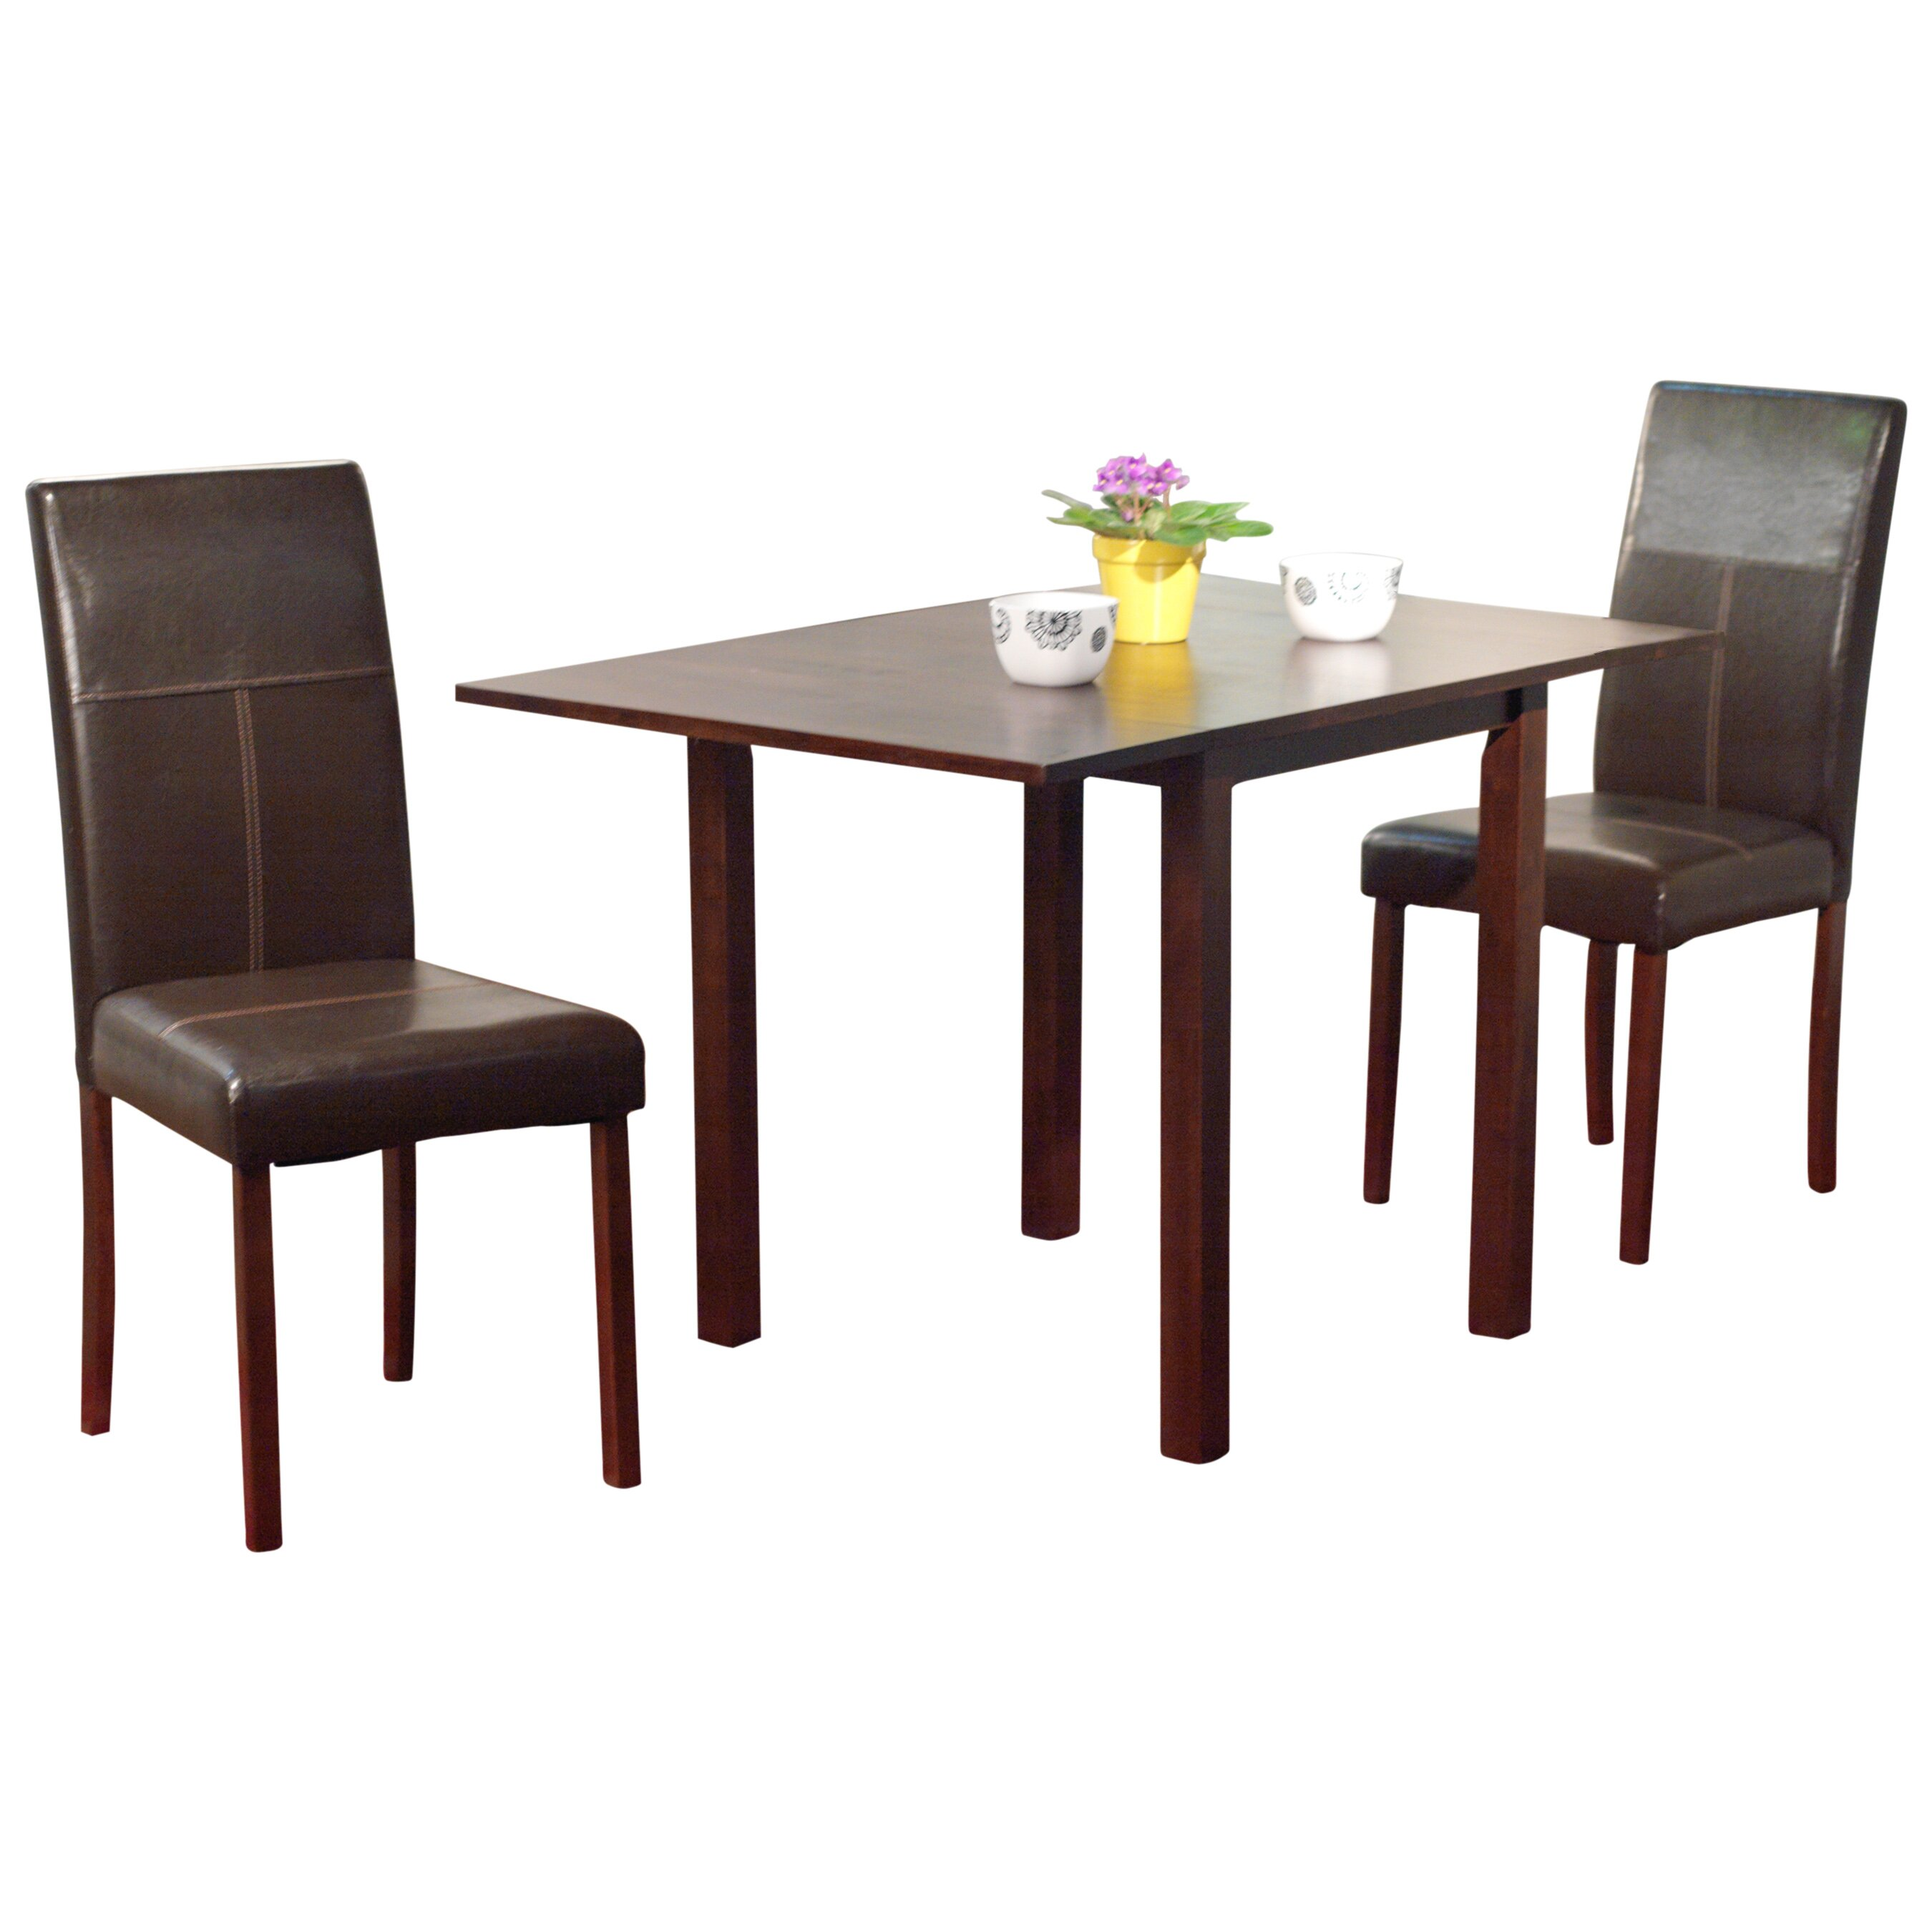 Brayden Studio Lorenzen 3 Piece Dining Set Reviews Wayfair